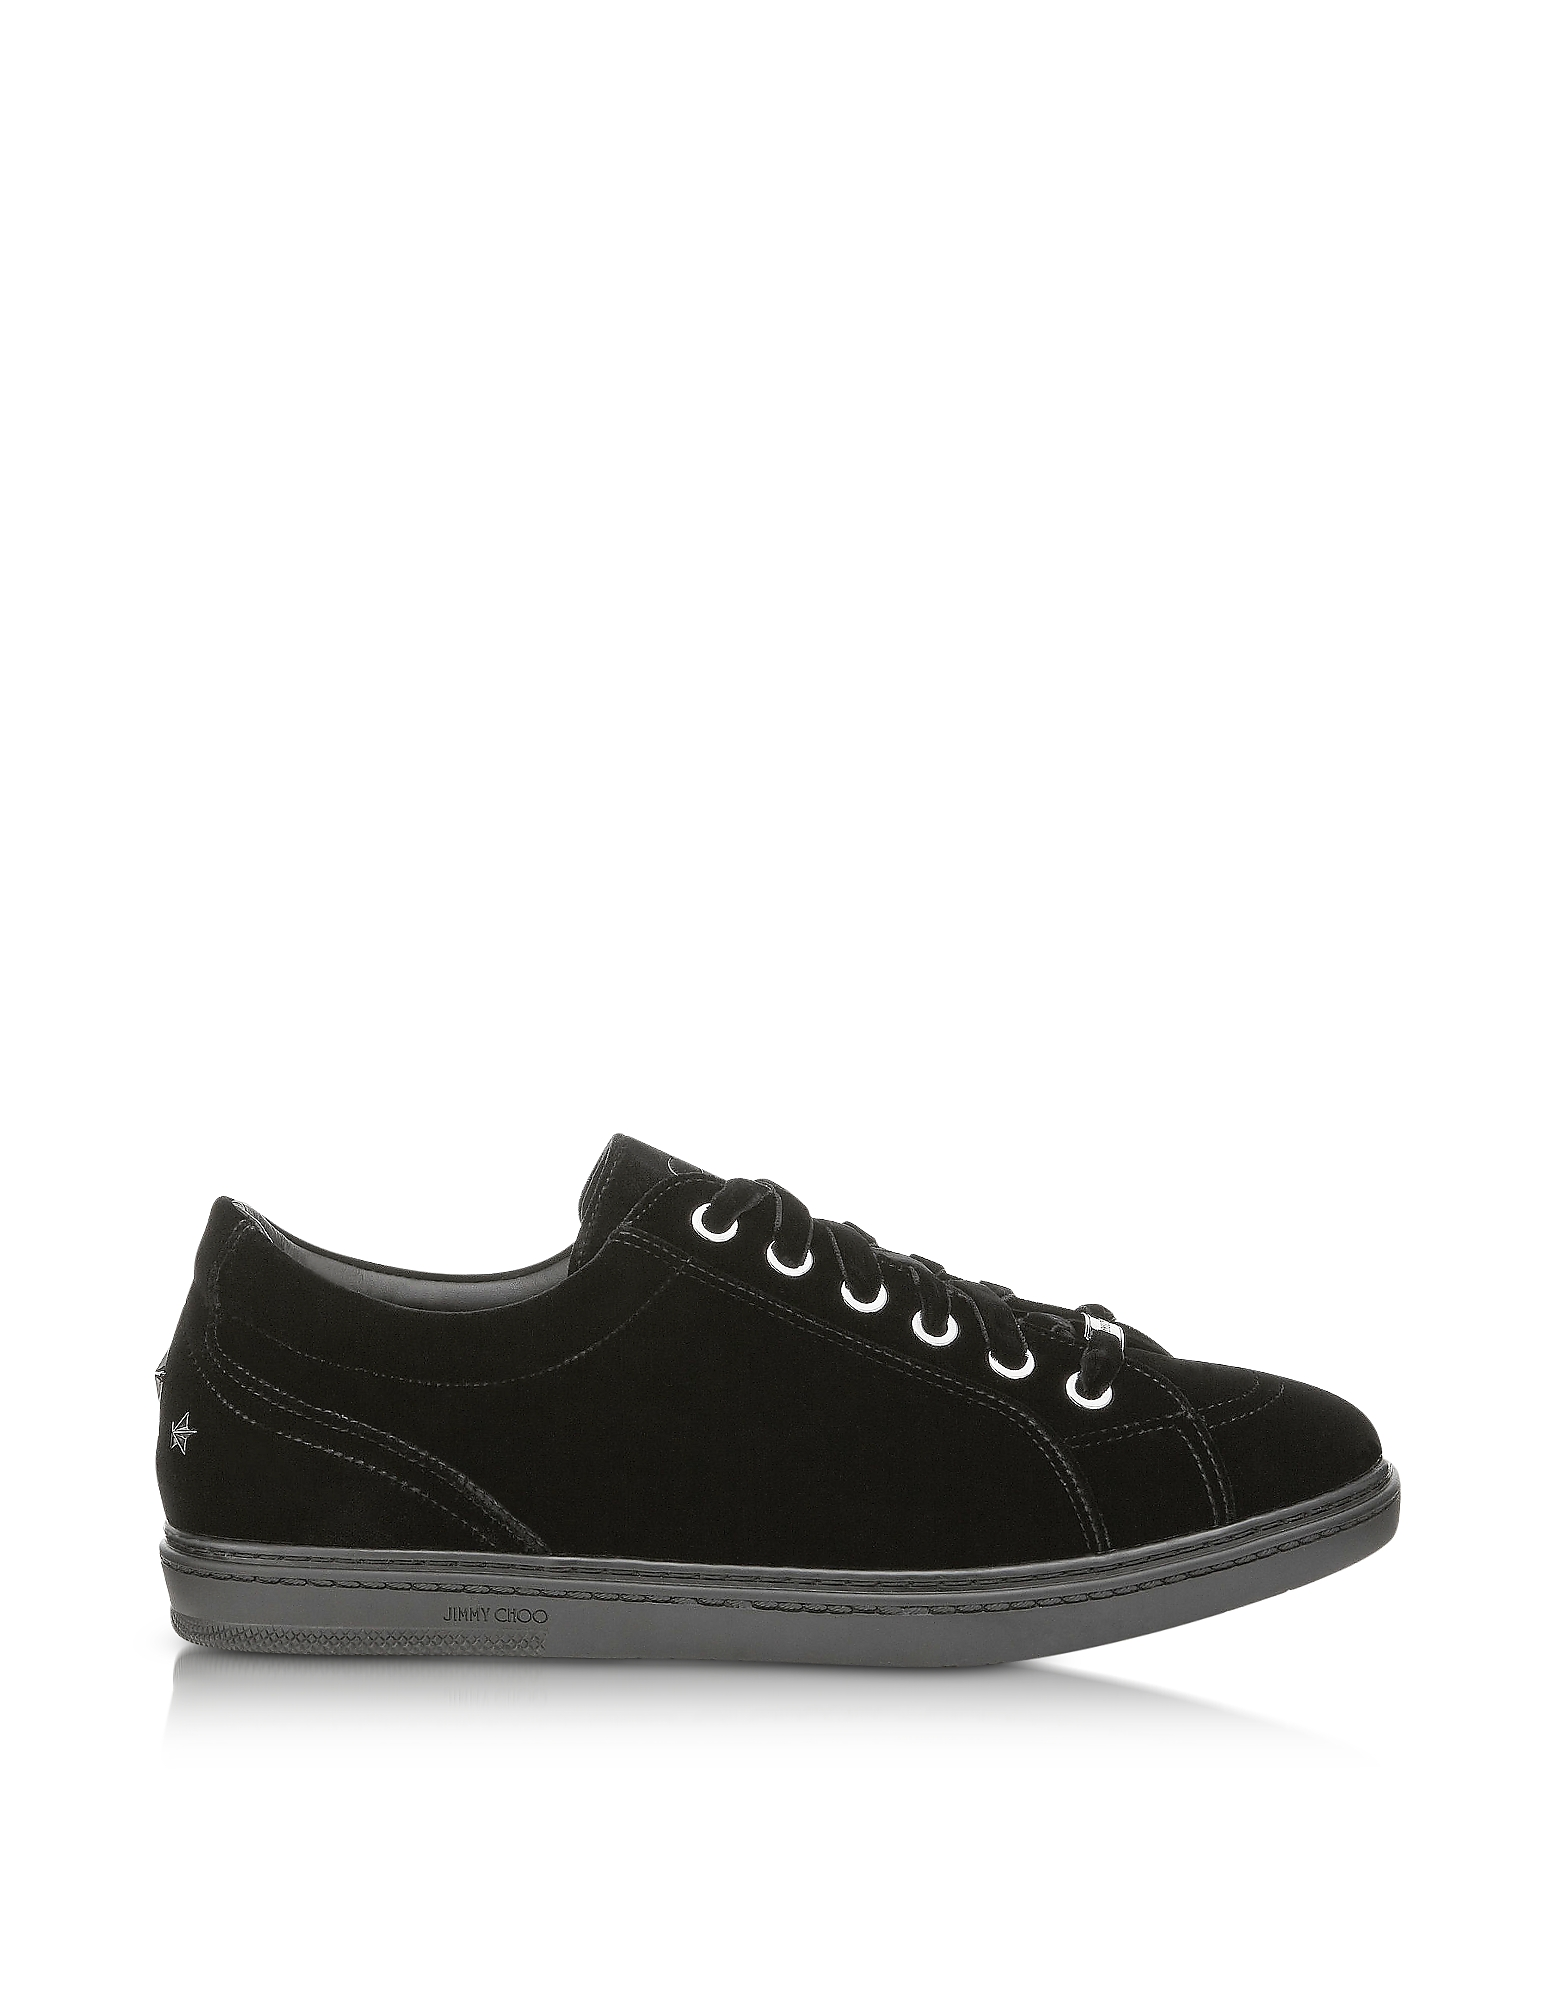 Jimmy Choo Shoes, Cash Black Velvet Low Top Sneakers w/Studded Stars